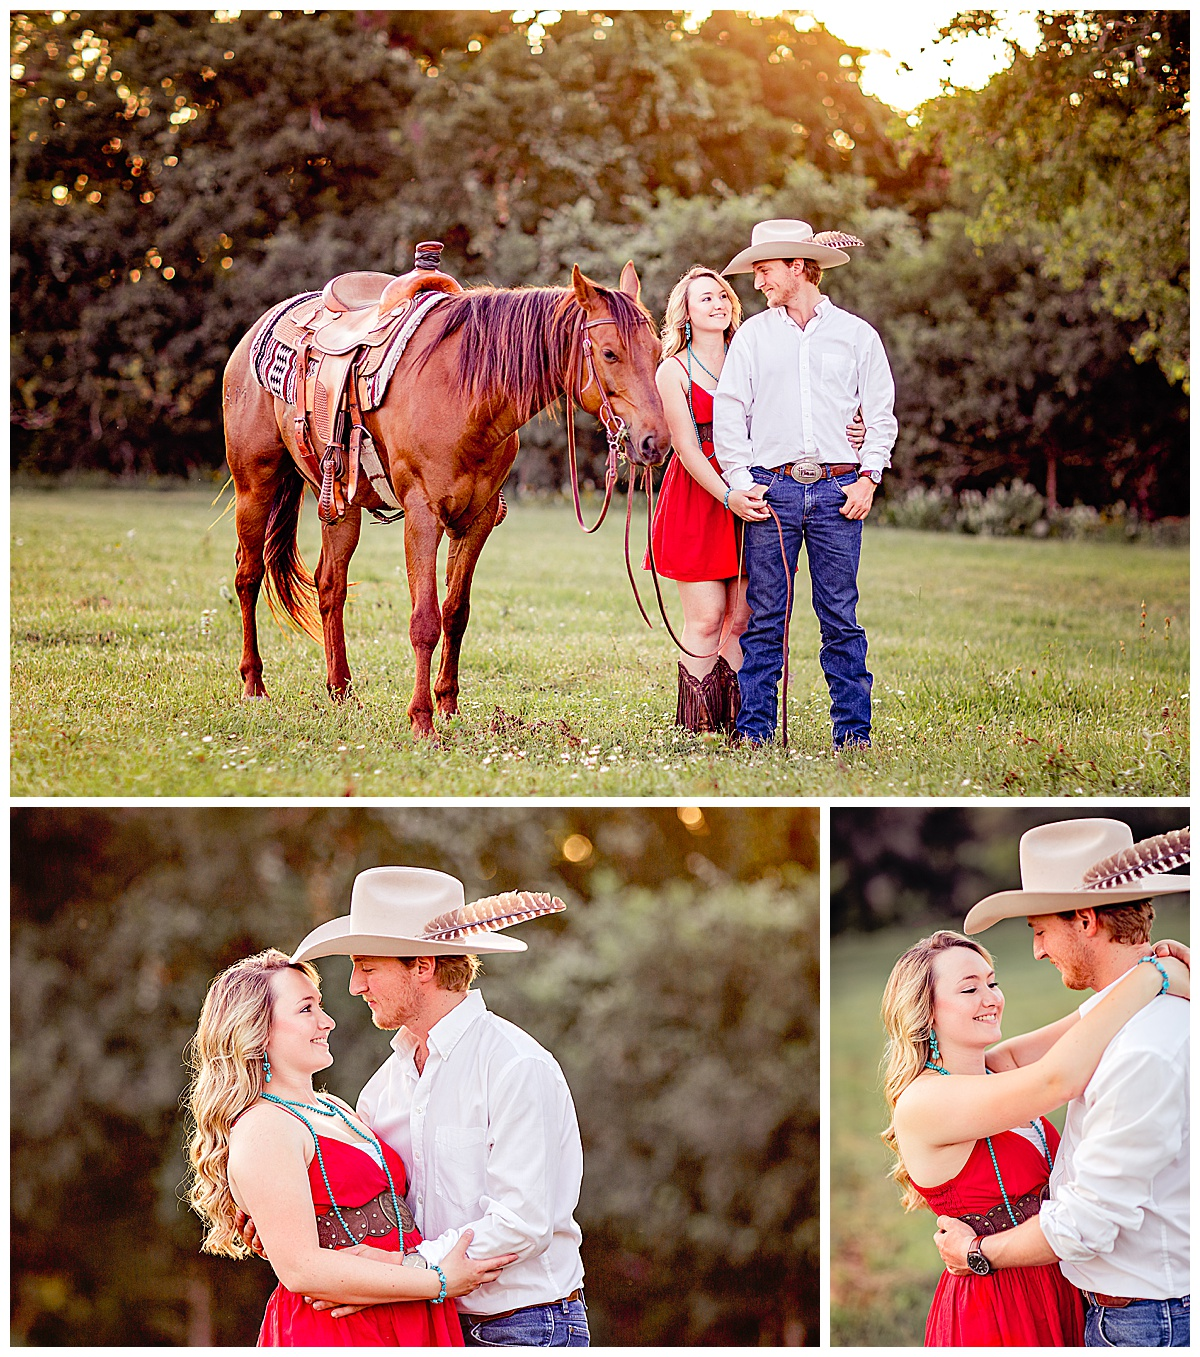 Rustic-Engagement-Session-Horse-Texas-Sunset-Carly-Barton-Photography_0003.jpg